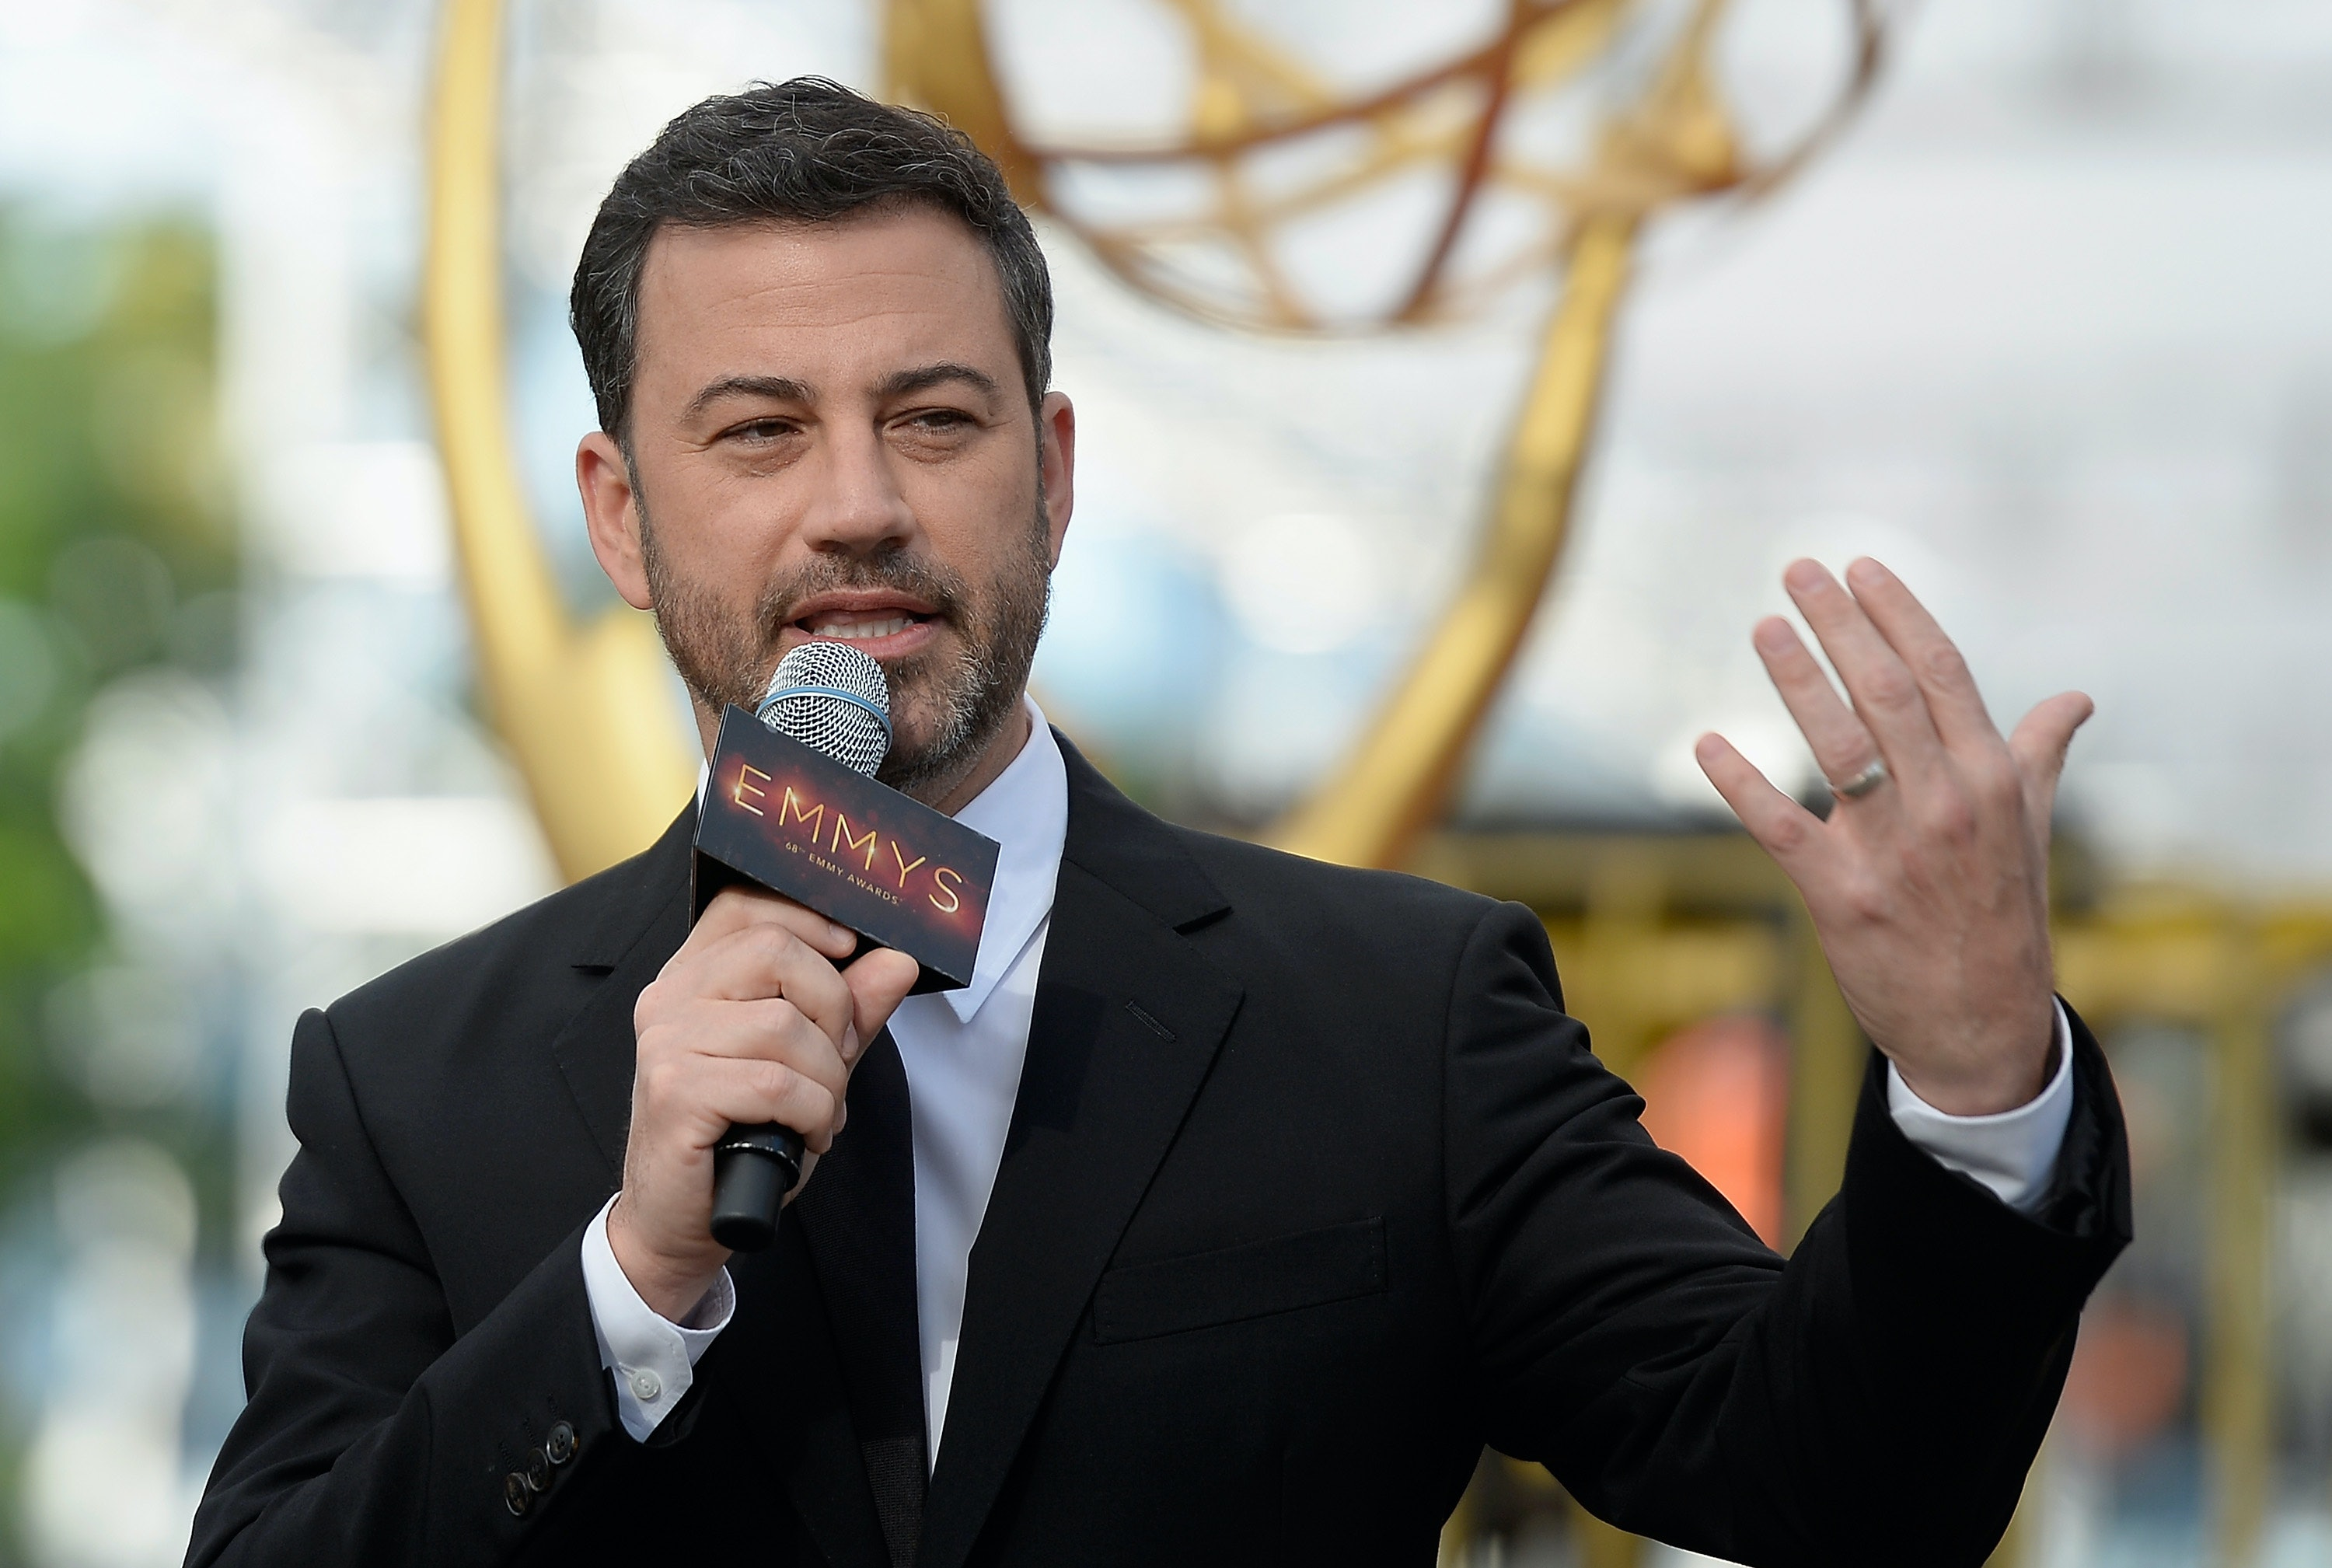 Jimmy Kimmel's mom makes 7000 PB&J sandwiches for the entire Emmys audience